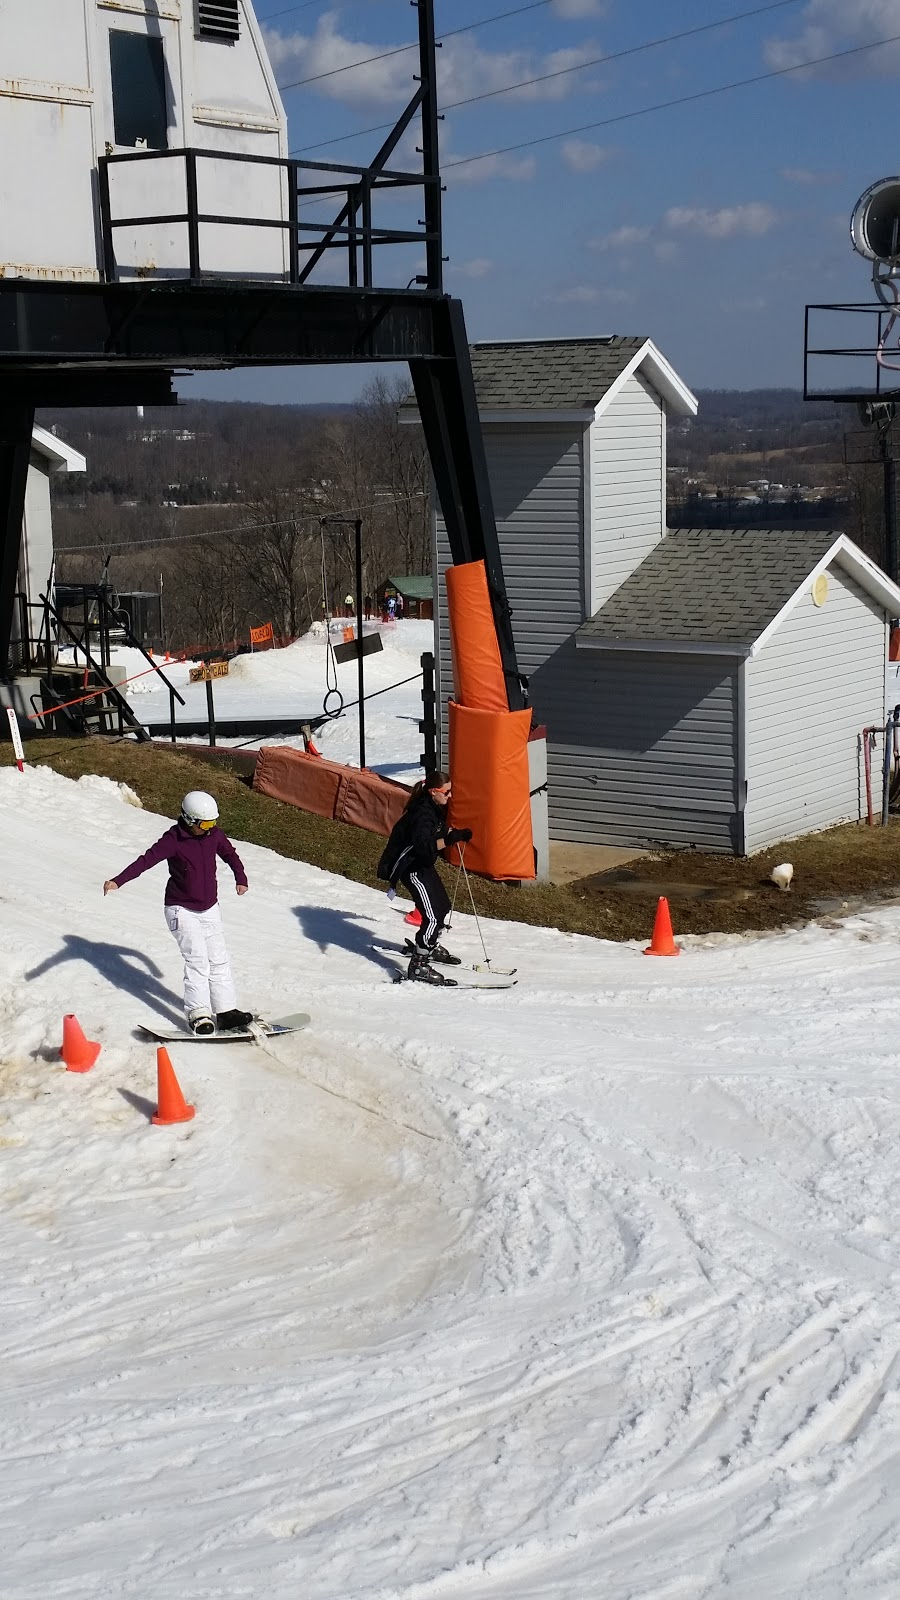 paoli in skiing at paoli peaks explore this city